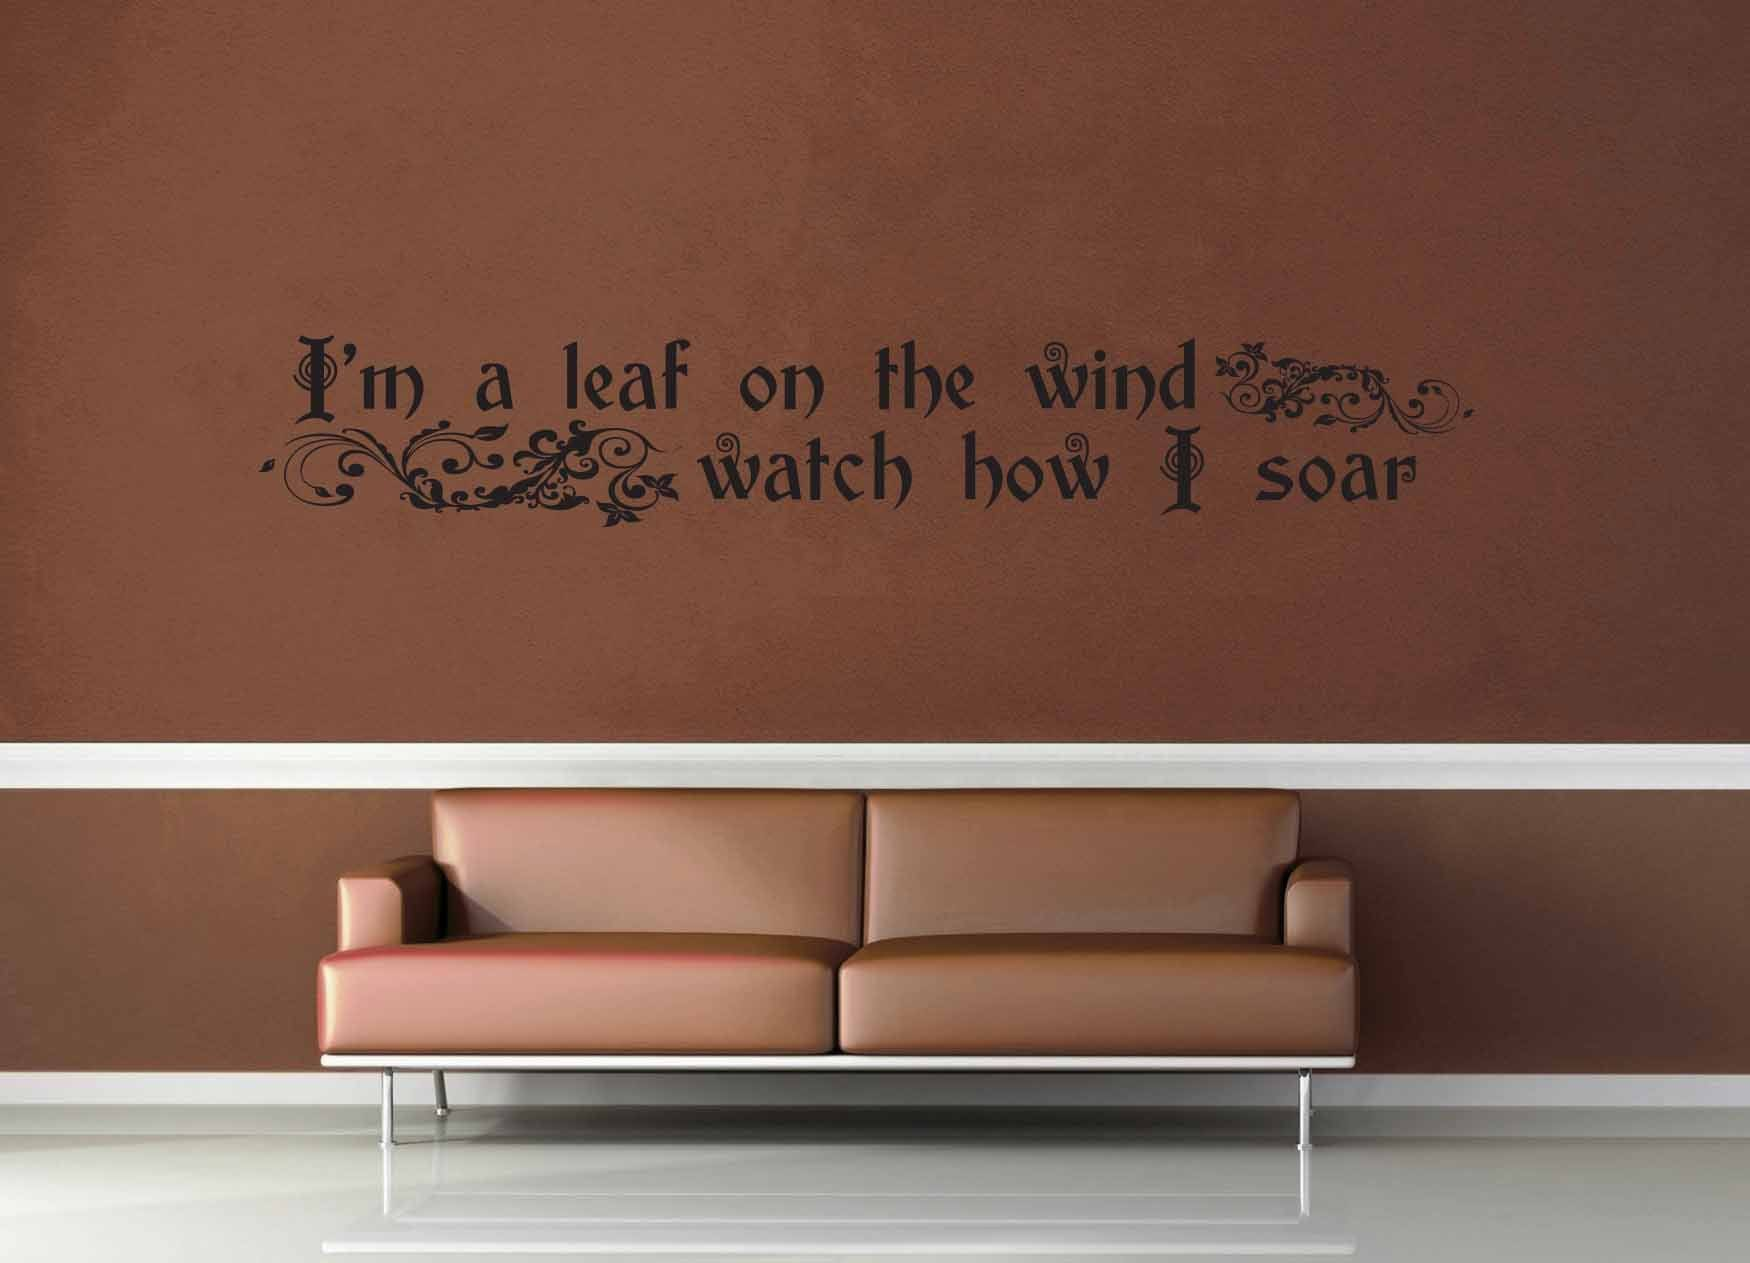 I'm a Leaf on the Wind - Firefly Quote - Wall Decal - No 2 - geekerymade